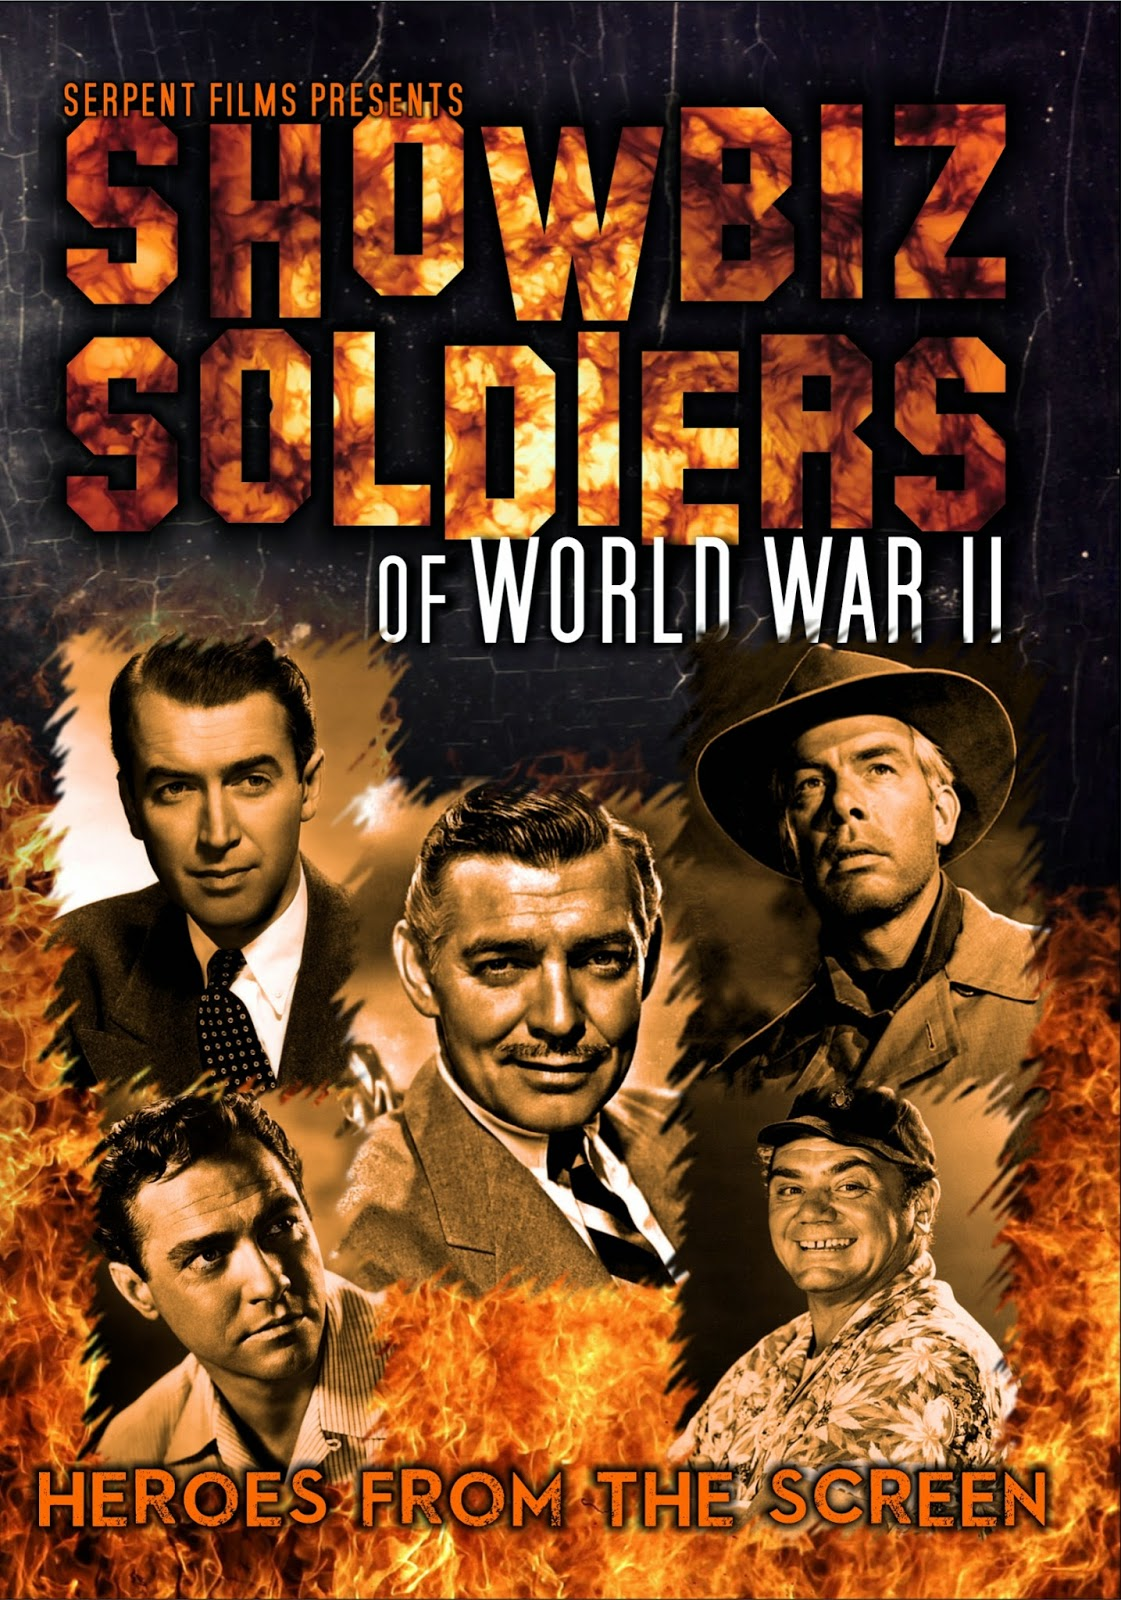 http://serpentfilms.blogspot.co.uk/p/showbiz-soldiers.html